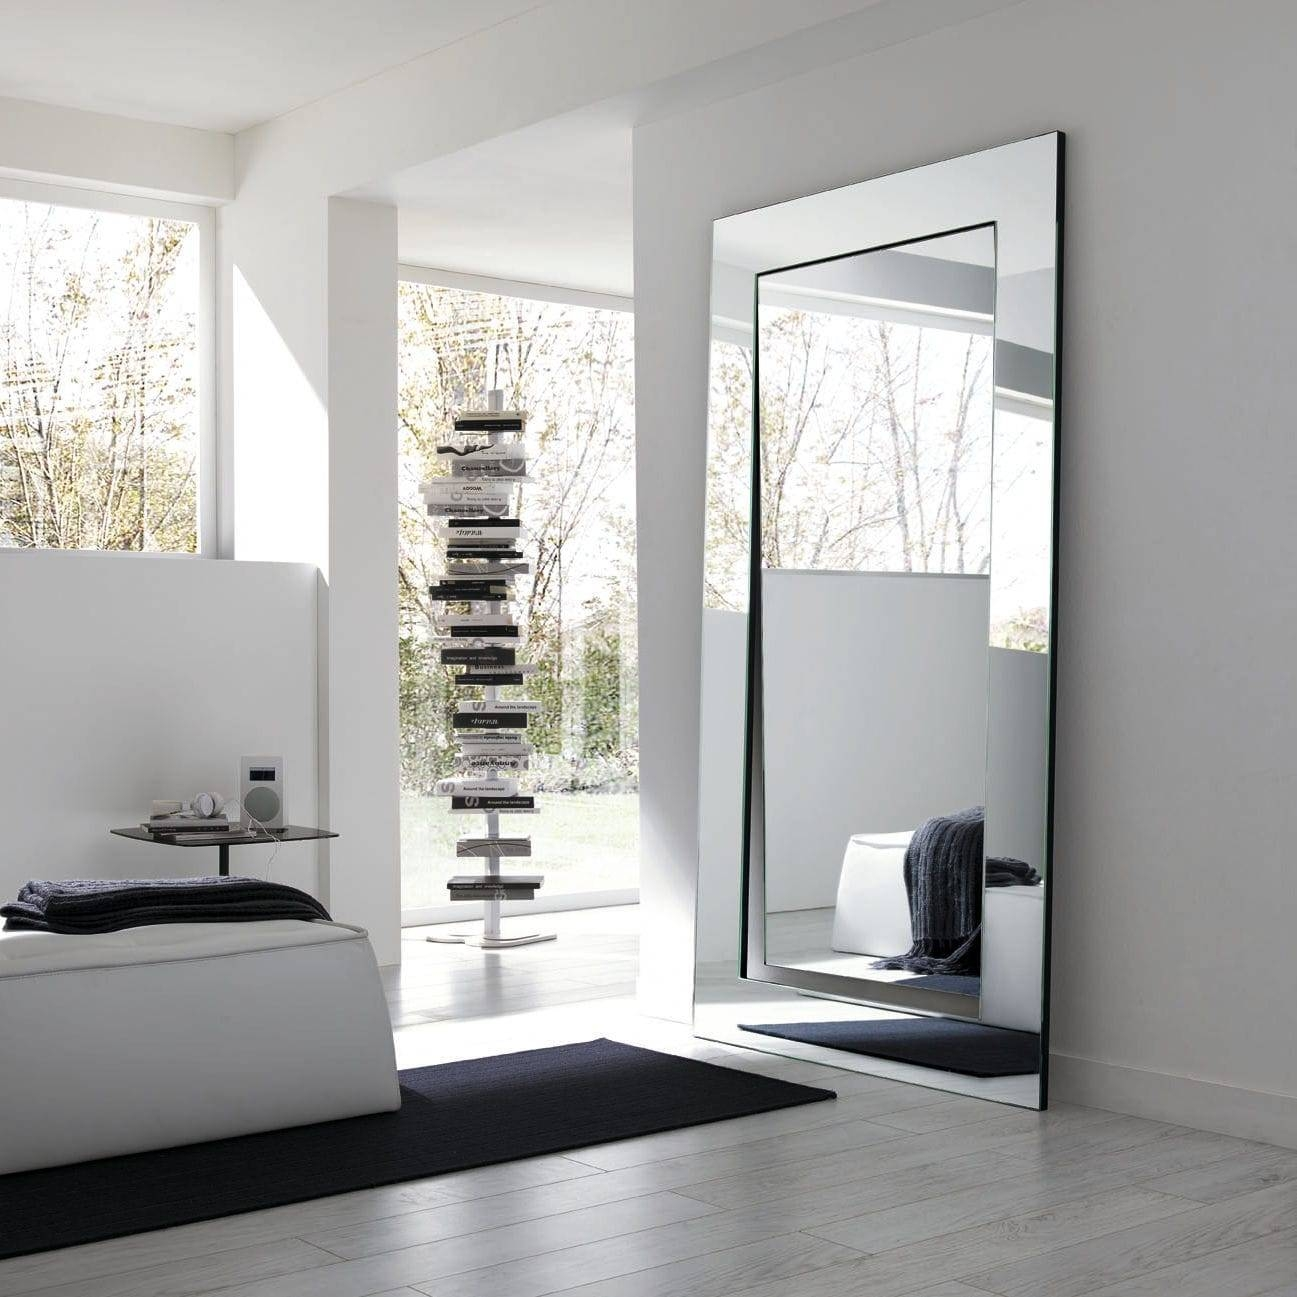 Free Standing Mirror / Wall Mounted / Contemporary / Oval In Oval Freestanding Mirrors (View 14 of 25)